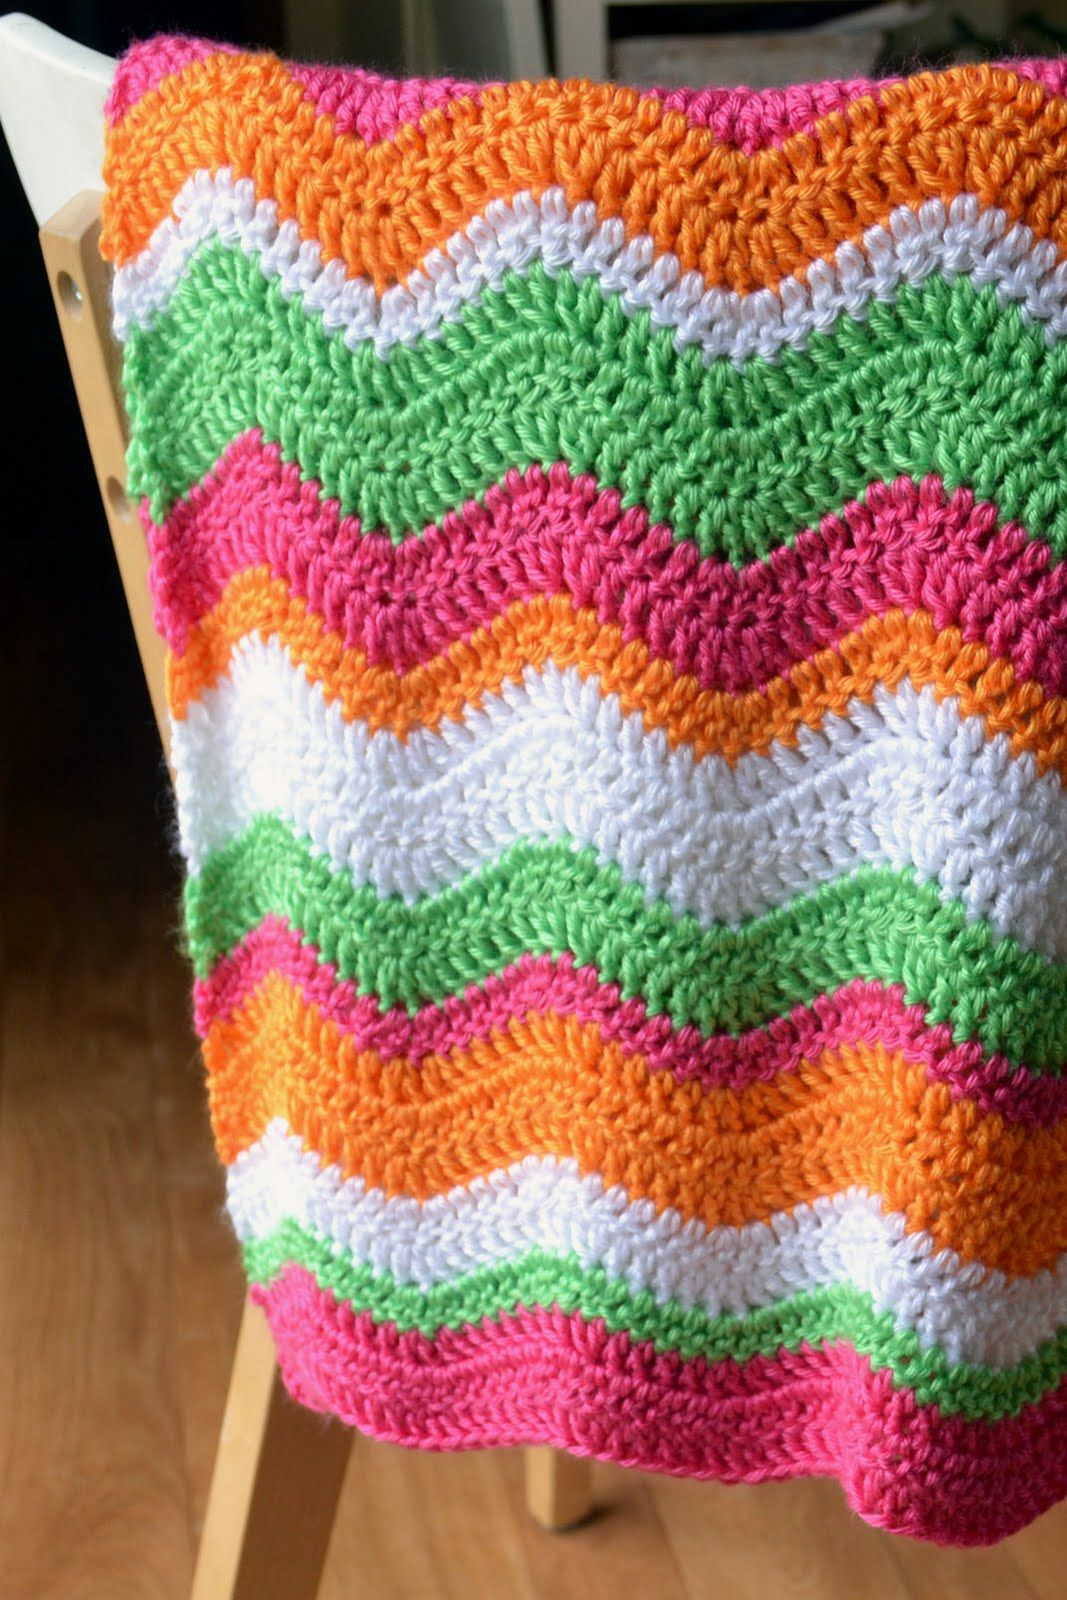 Crochet In Color Instructions For The Brite Baby Ripple Crochet Ripple Crochet Patterns Crochet Baby